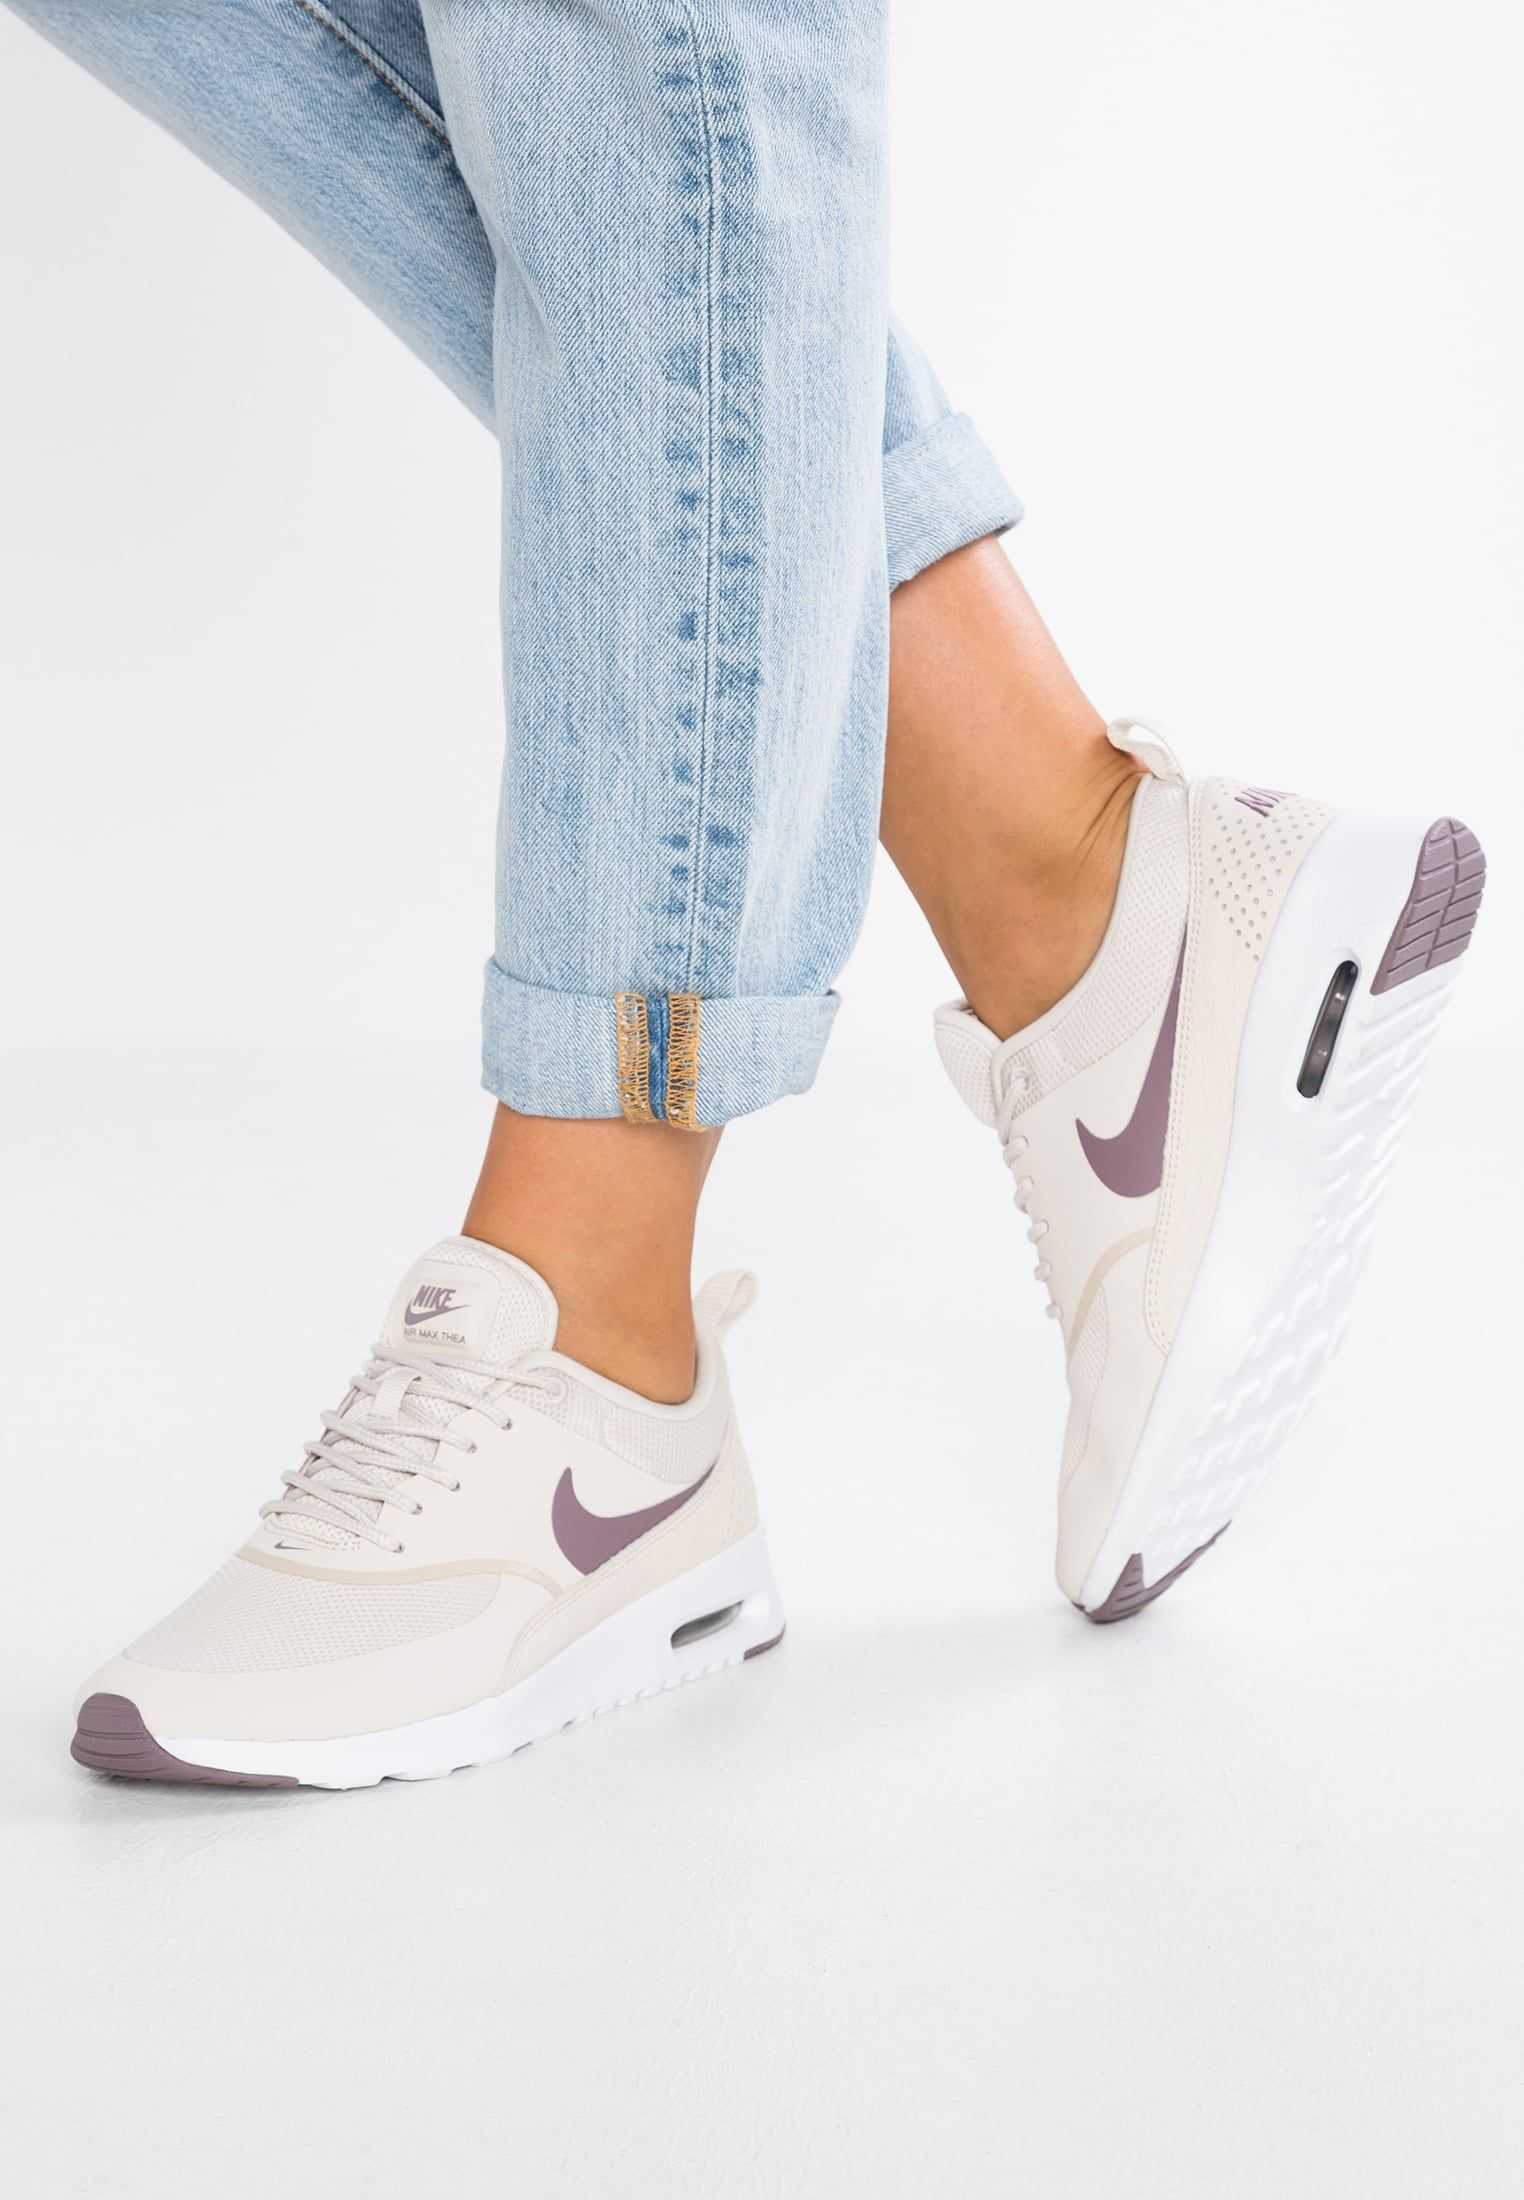 info for 23594 8caef Sneakers laag Nike Sportswear AIR MAX THEA - Sneakers laag - light orewood  brown taupe grey beige  € 95,95 Bij Zalando (op 12-1-18).